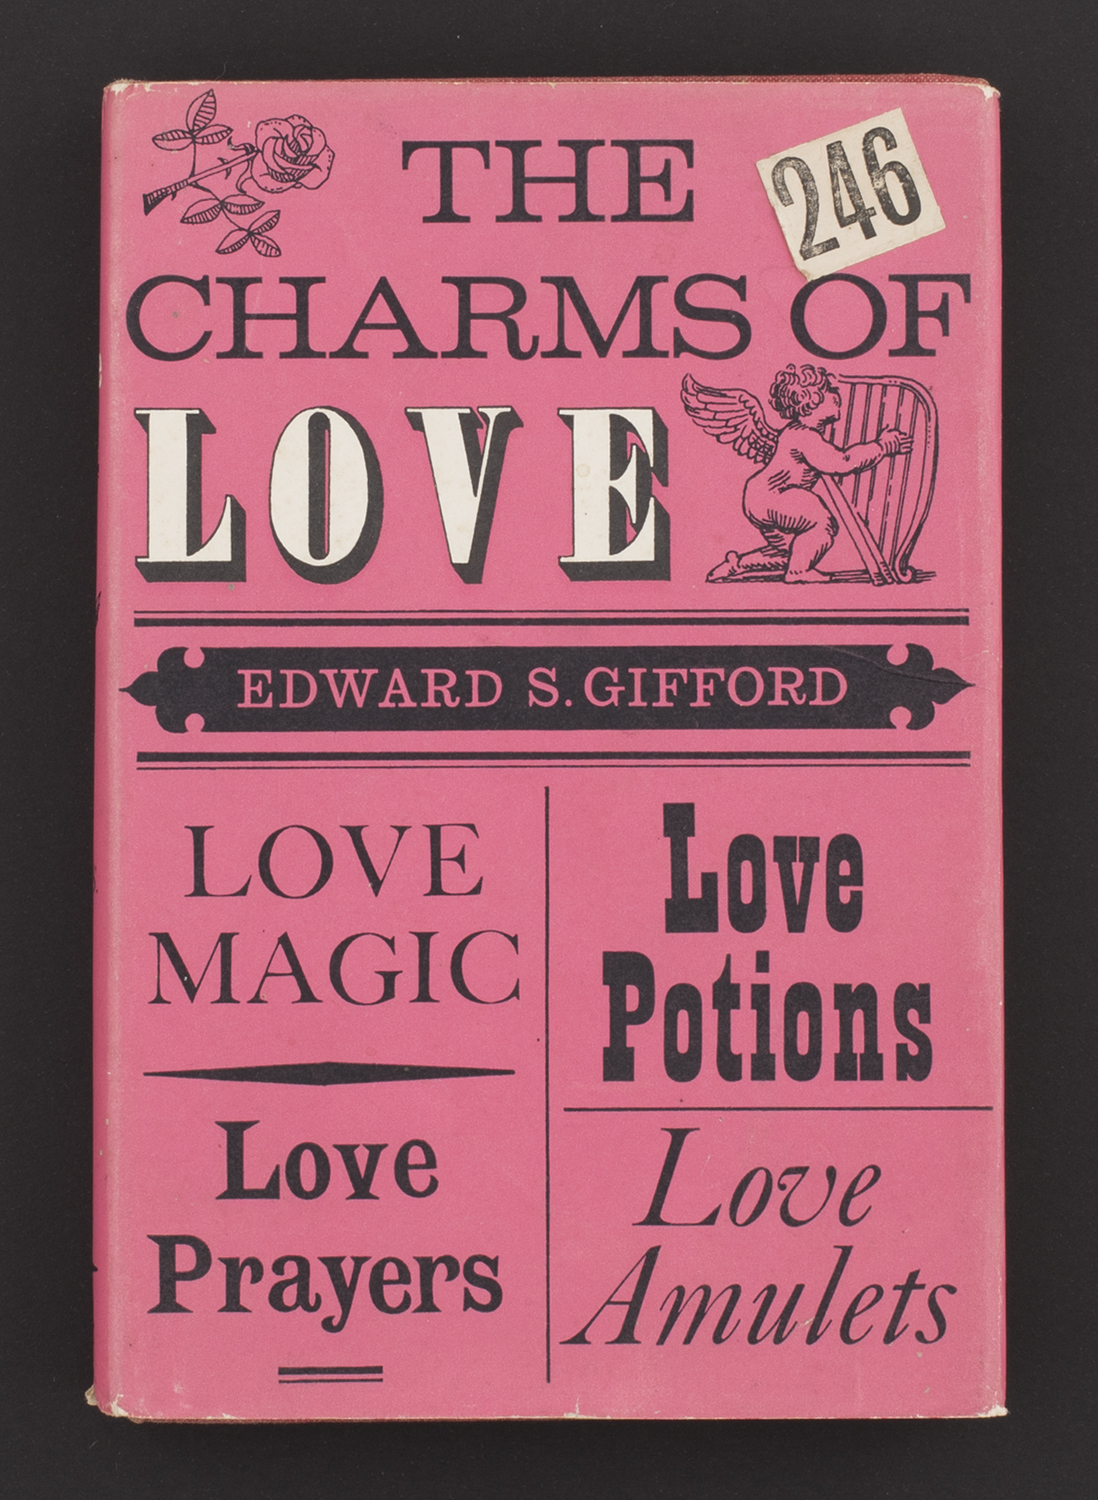 The Charms of Love , 1963, found in Brighton